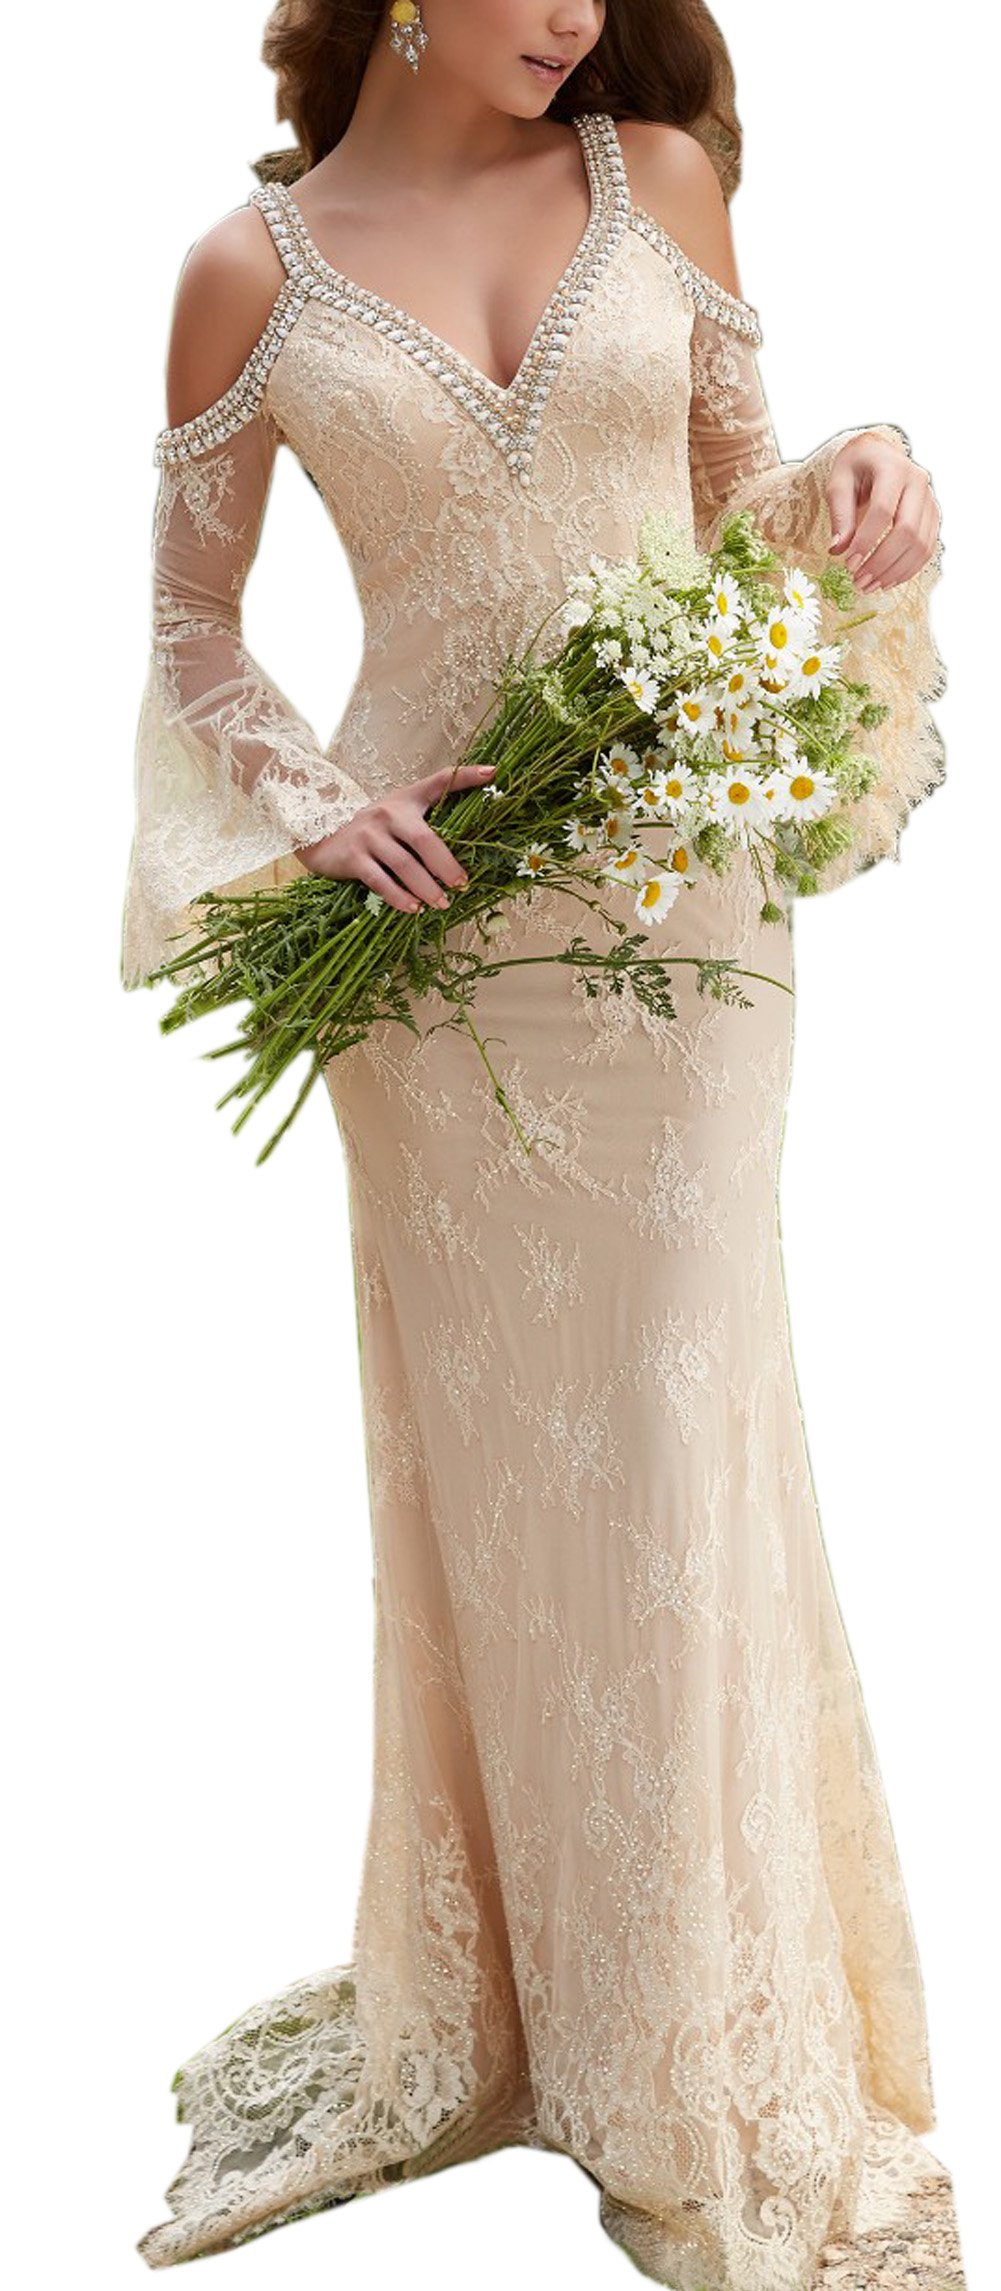 Sayadress Women's Boho Beaded Lace Long Beach Wedding Dress Crystals Straps with Trumpet Sleeves Champagne US12